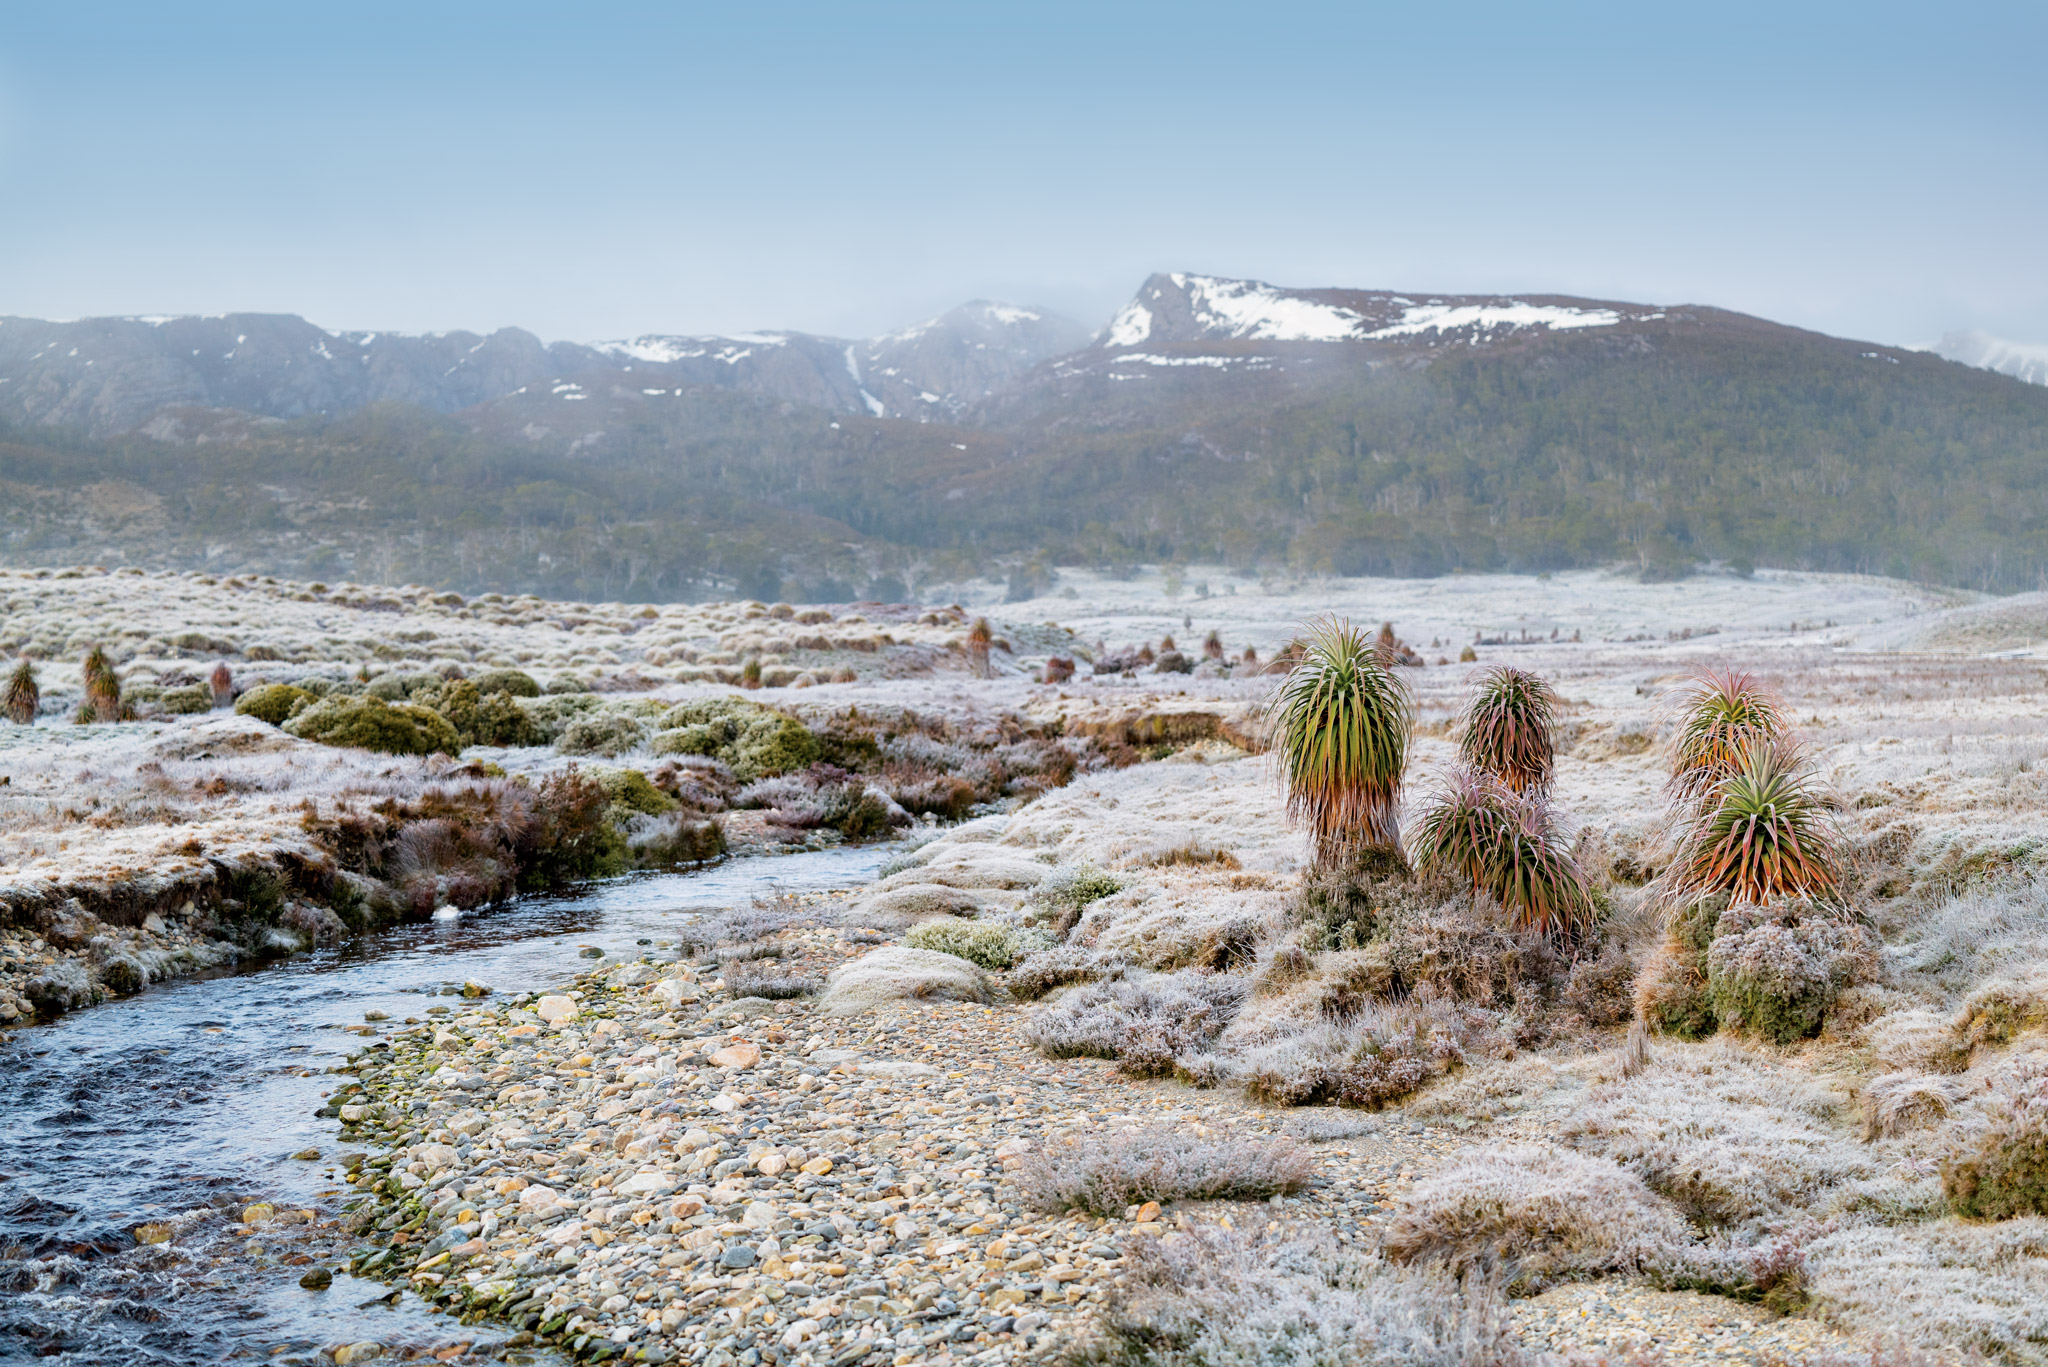 What makes Tasmania an outdoor lover's dream?